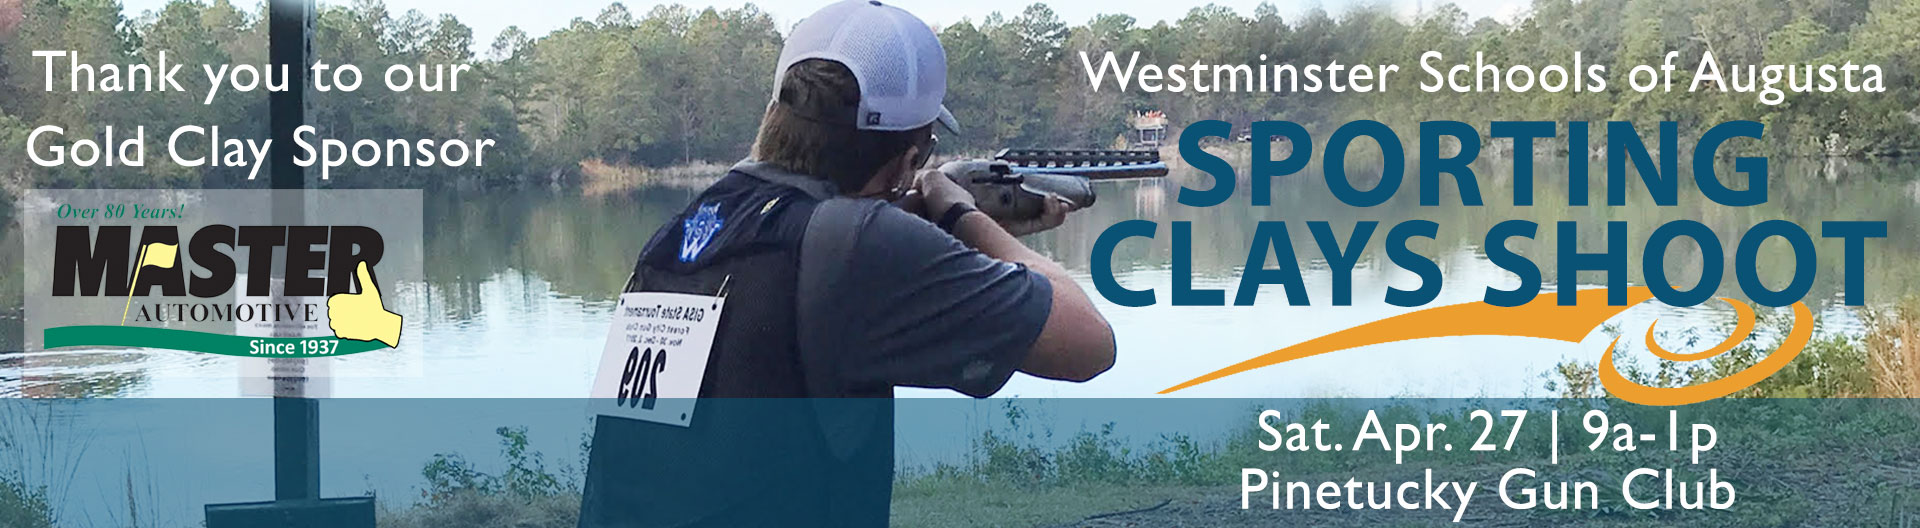 header image: sporting clay shoot | Westminster